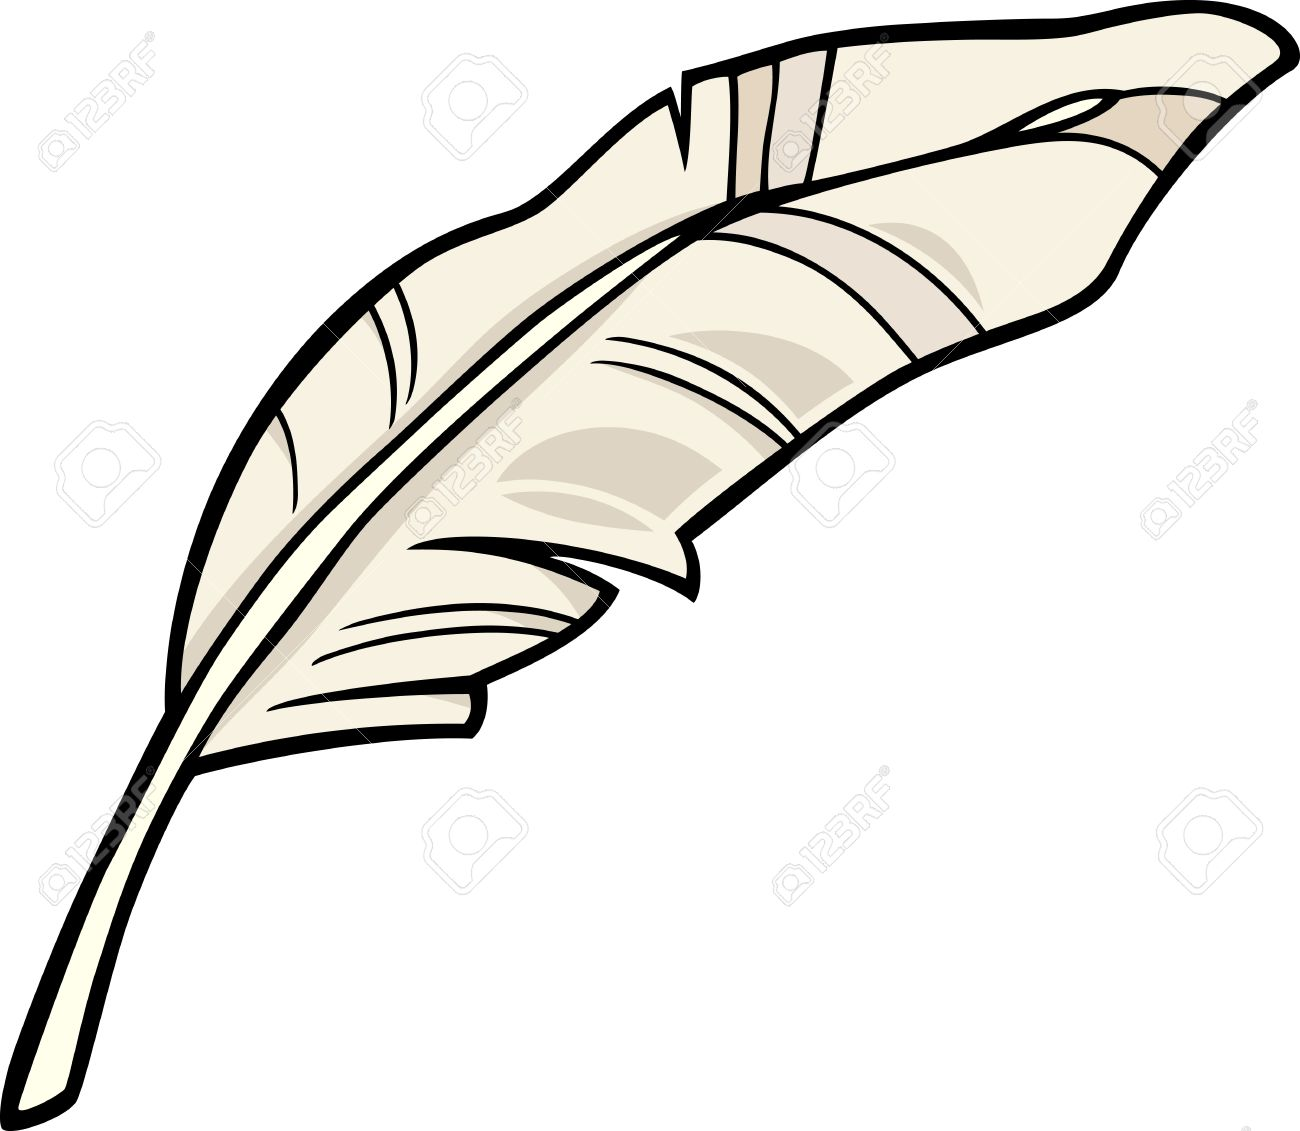 1300x1131 Cartoon Illustration Of White Feather Clip Art Royalty Free